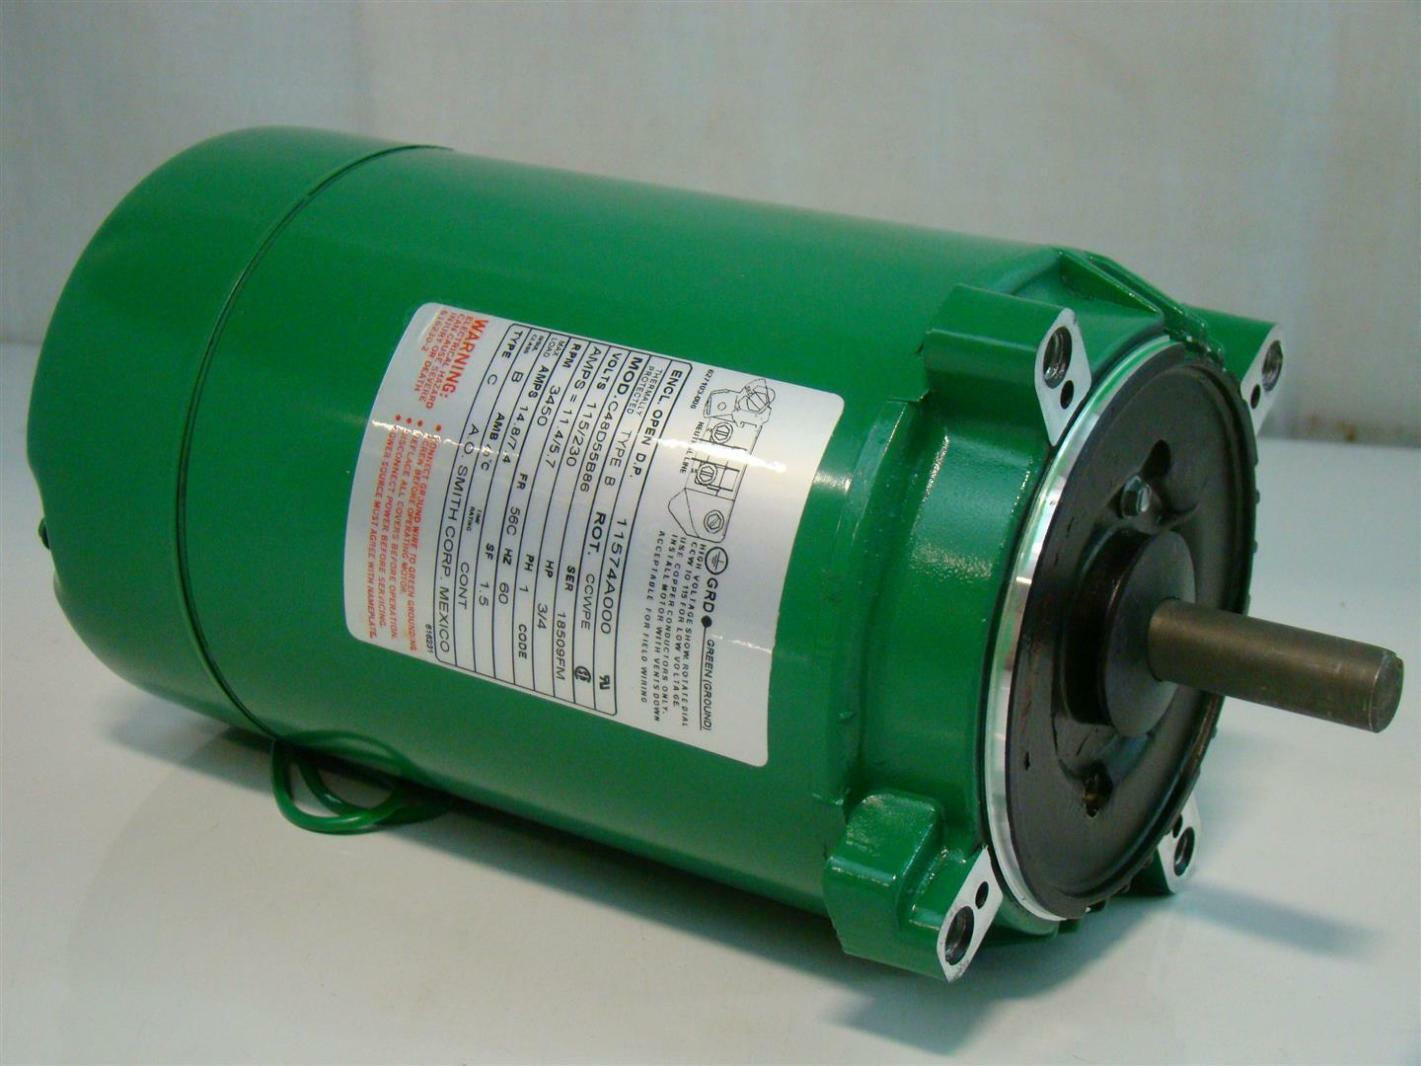 AO Smith 3/4HP Electric Motor 115/230V 3450 Rpm 11574A000 C48D55B86 Single Phase